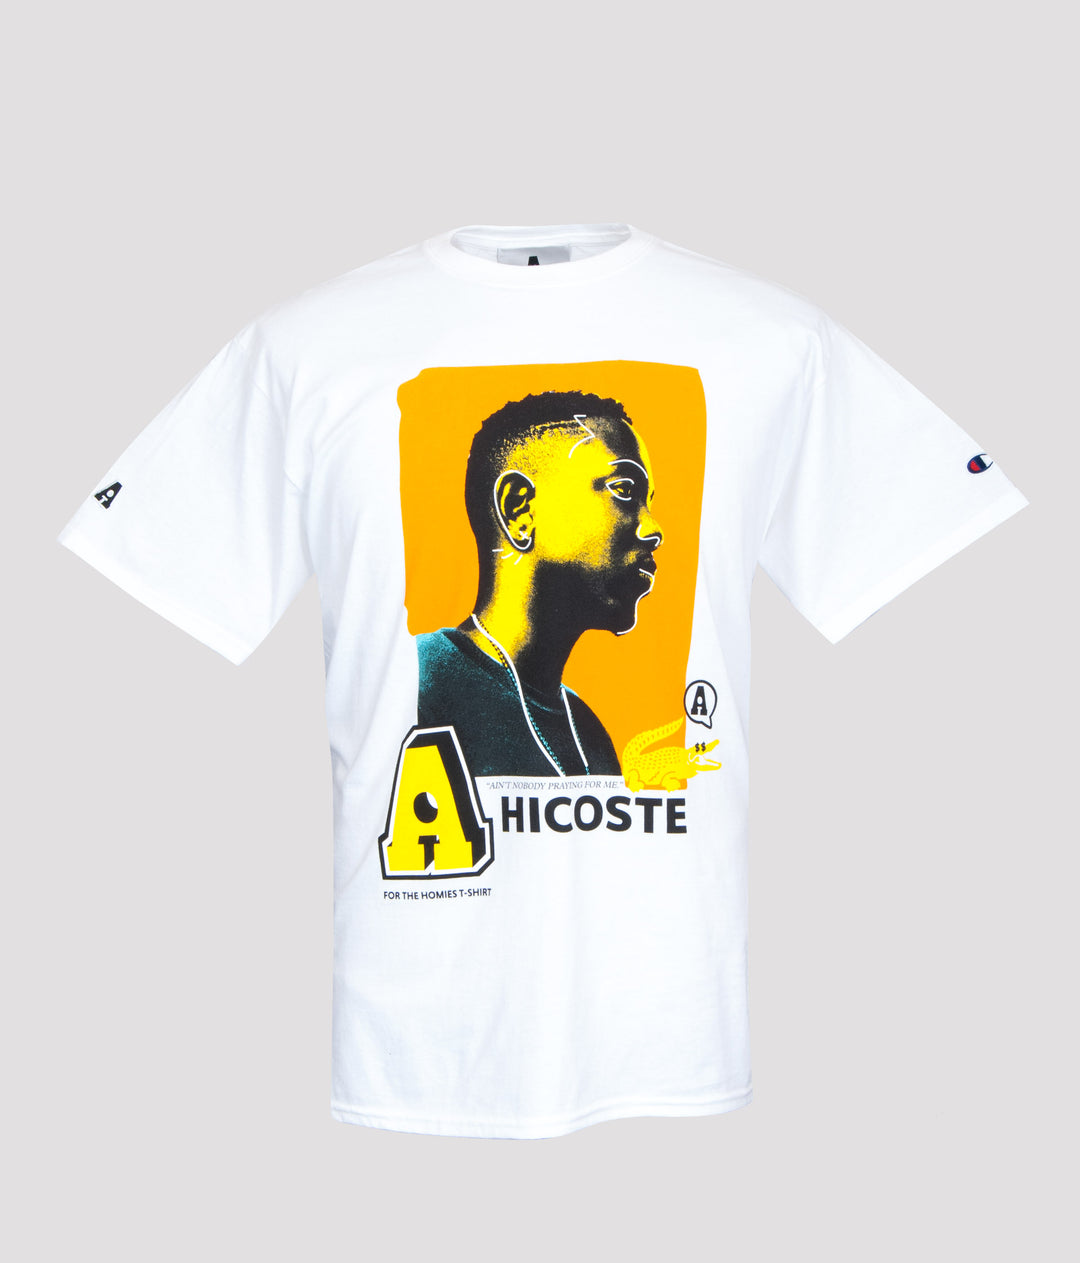 HICOSTE T-Shirt